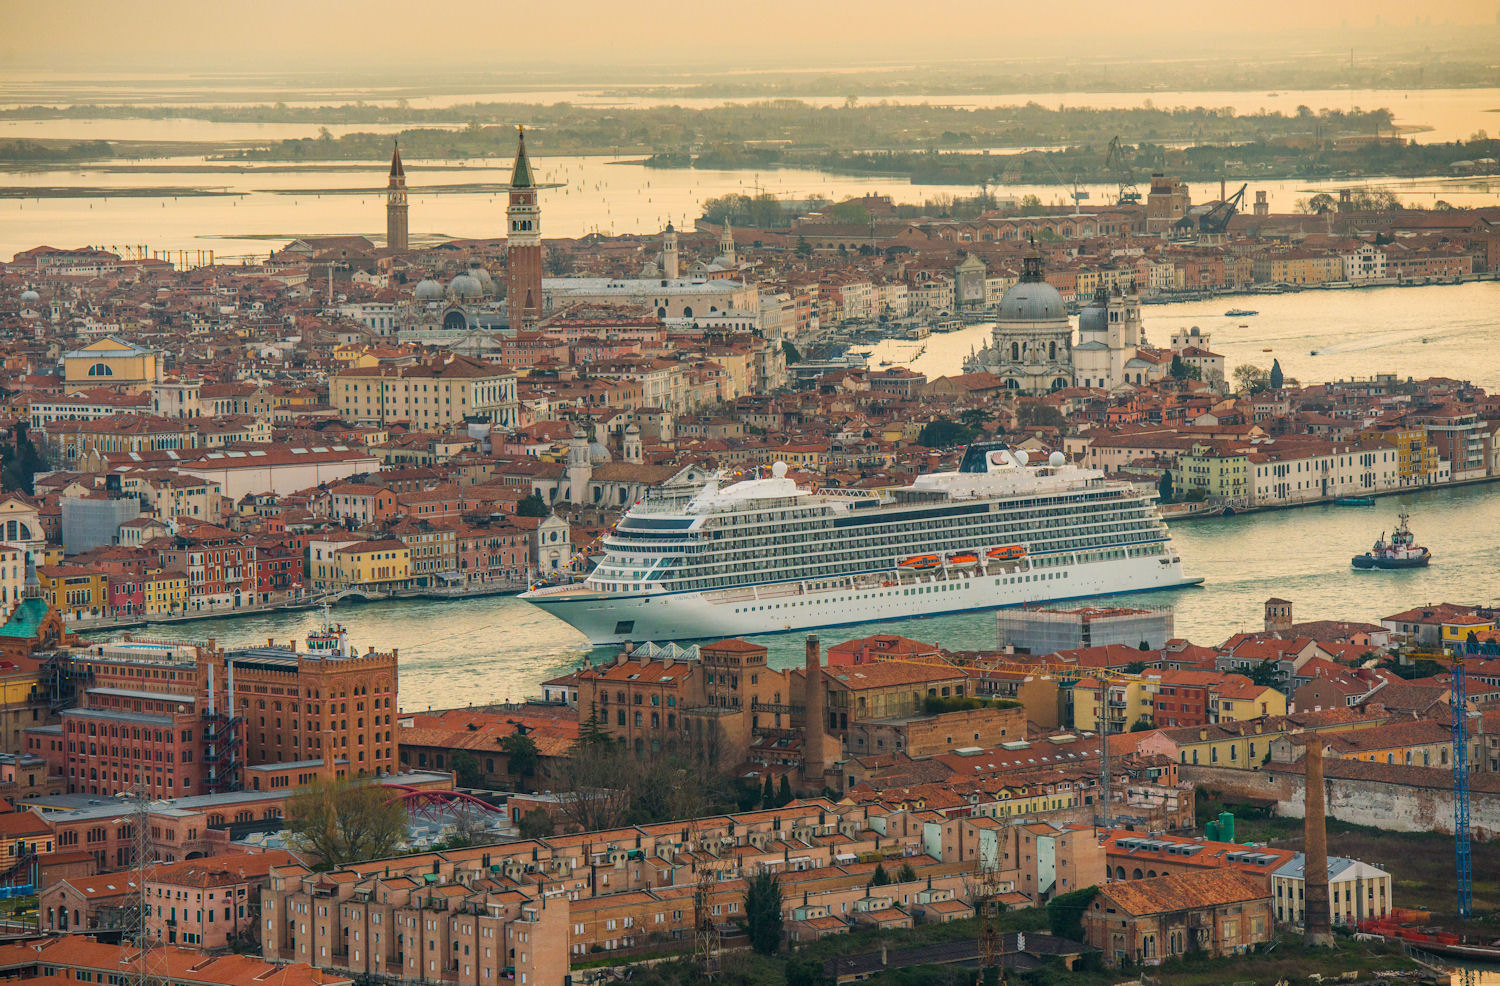 The Viking Sea sets sail on her maiden voyage. Photo: © Edelman and Viking Cruises. Unauthorized use is prohibited.